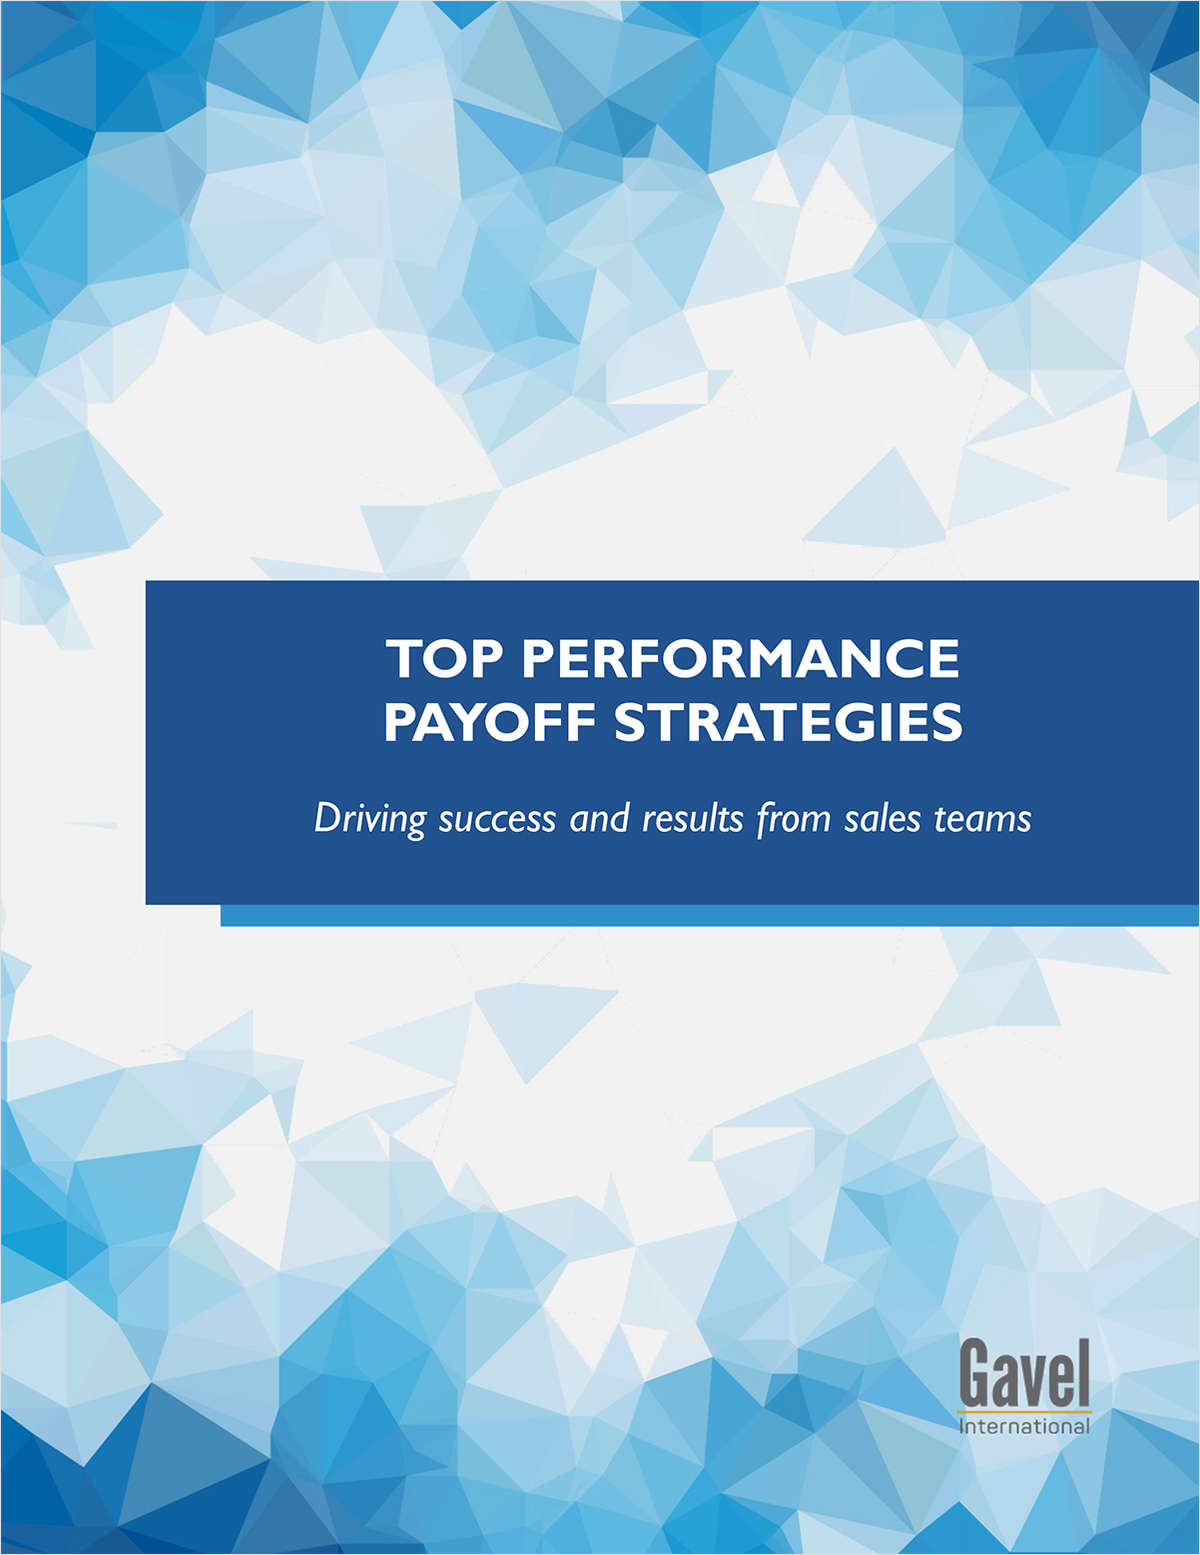 Top Performance Payoff Strategies